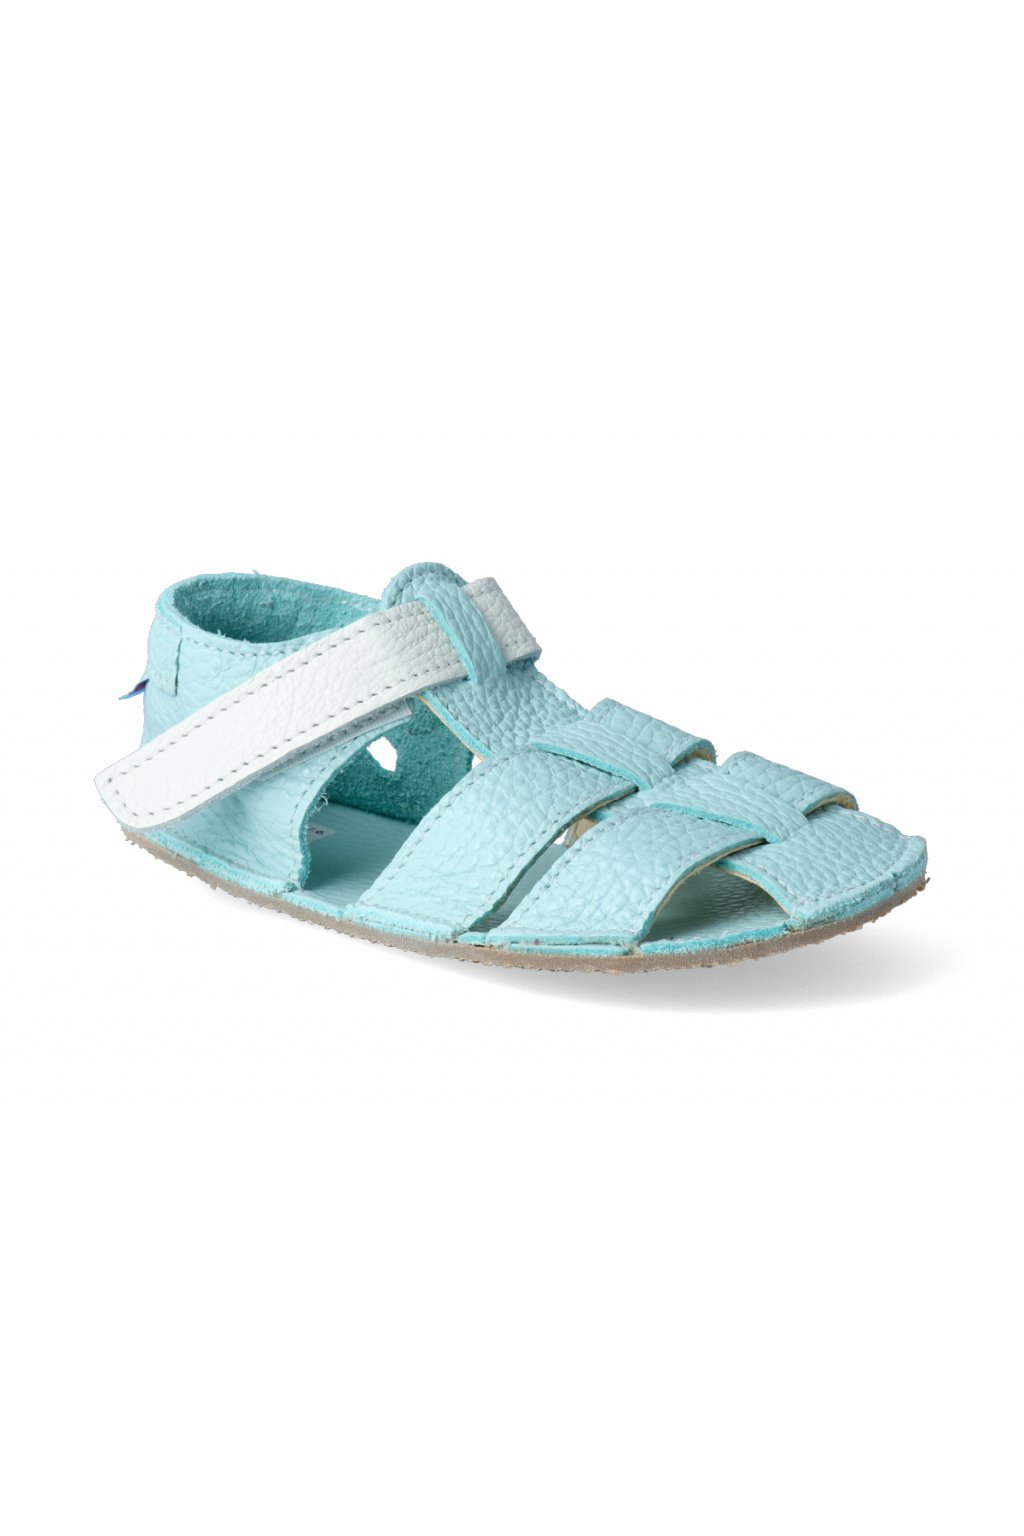 Baby Bare Shoes Acqua - Sandals New